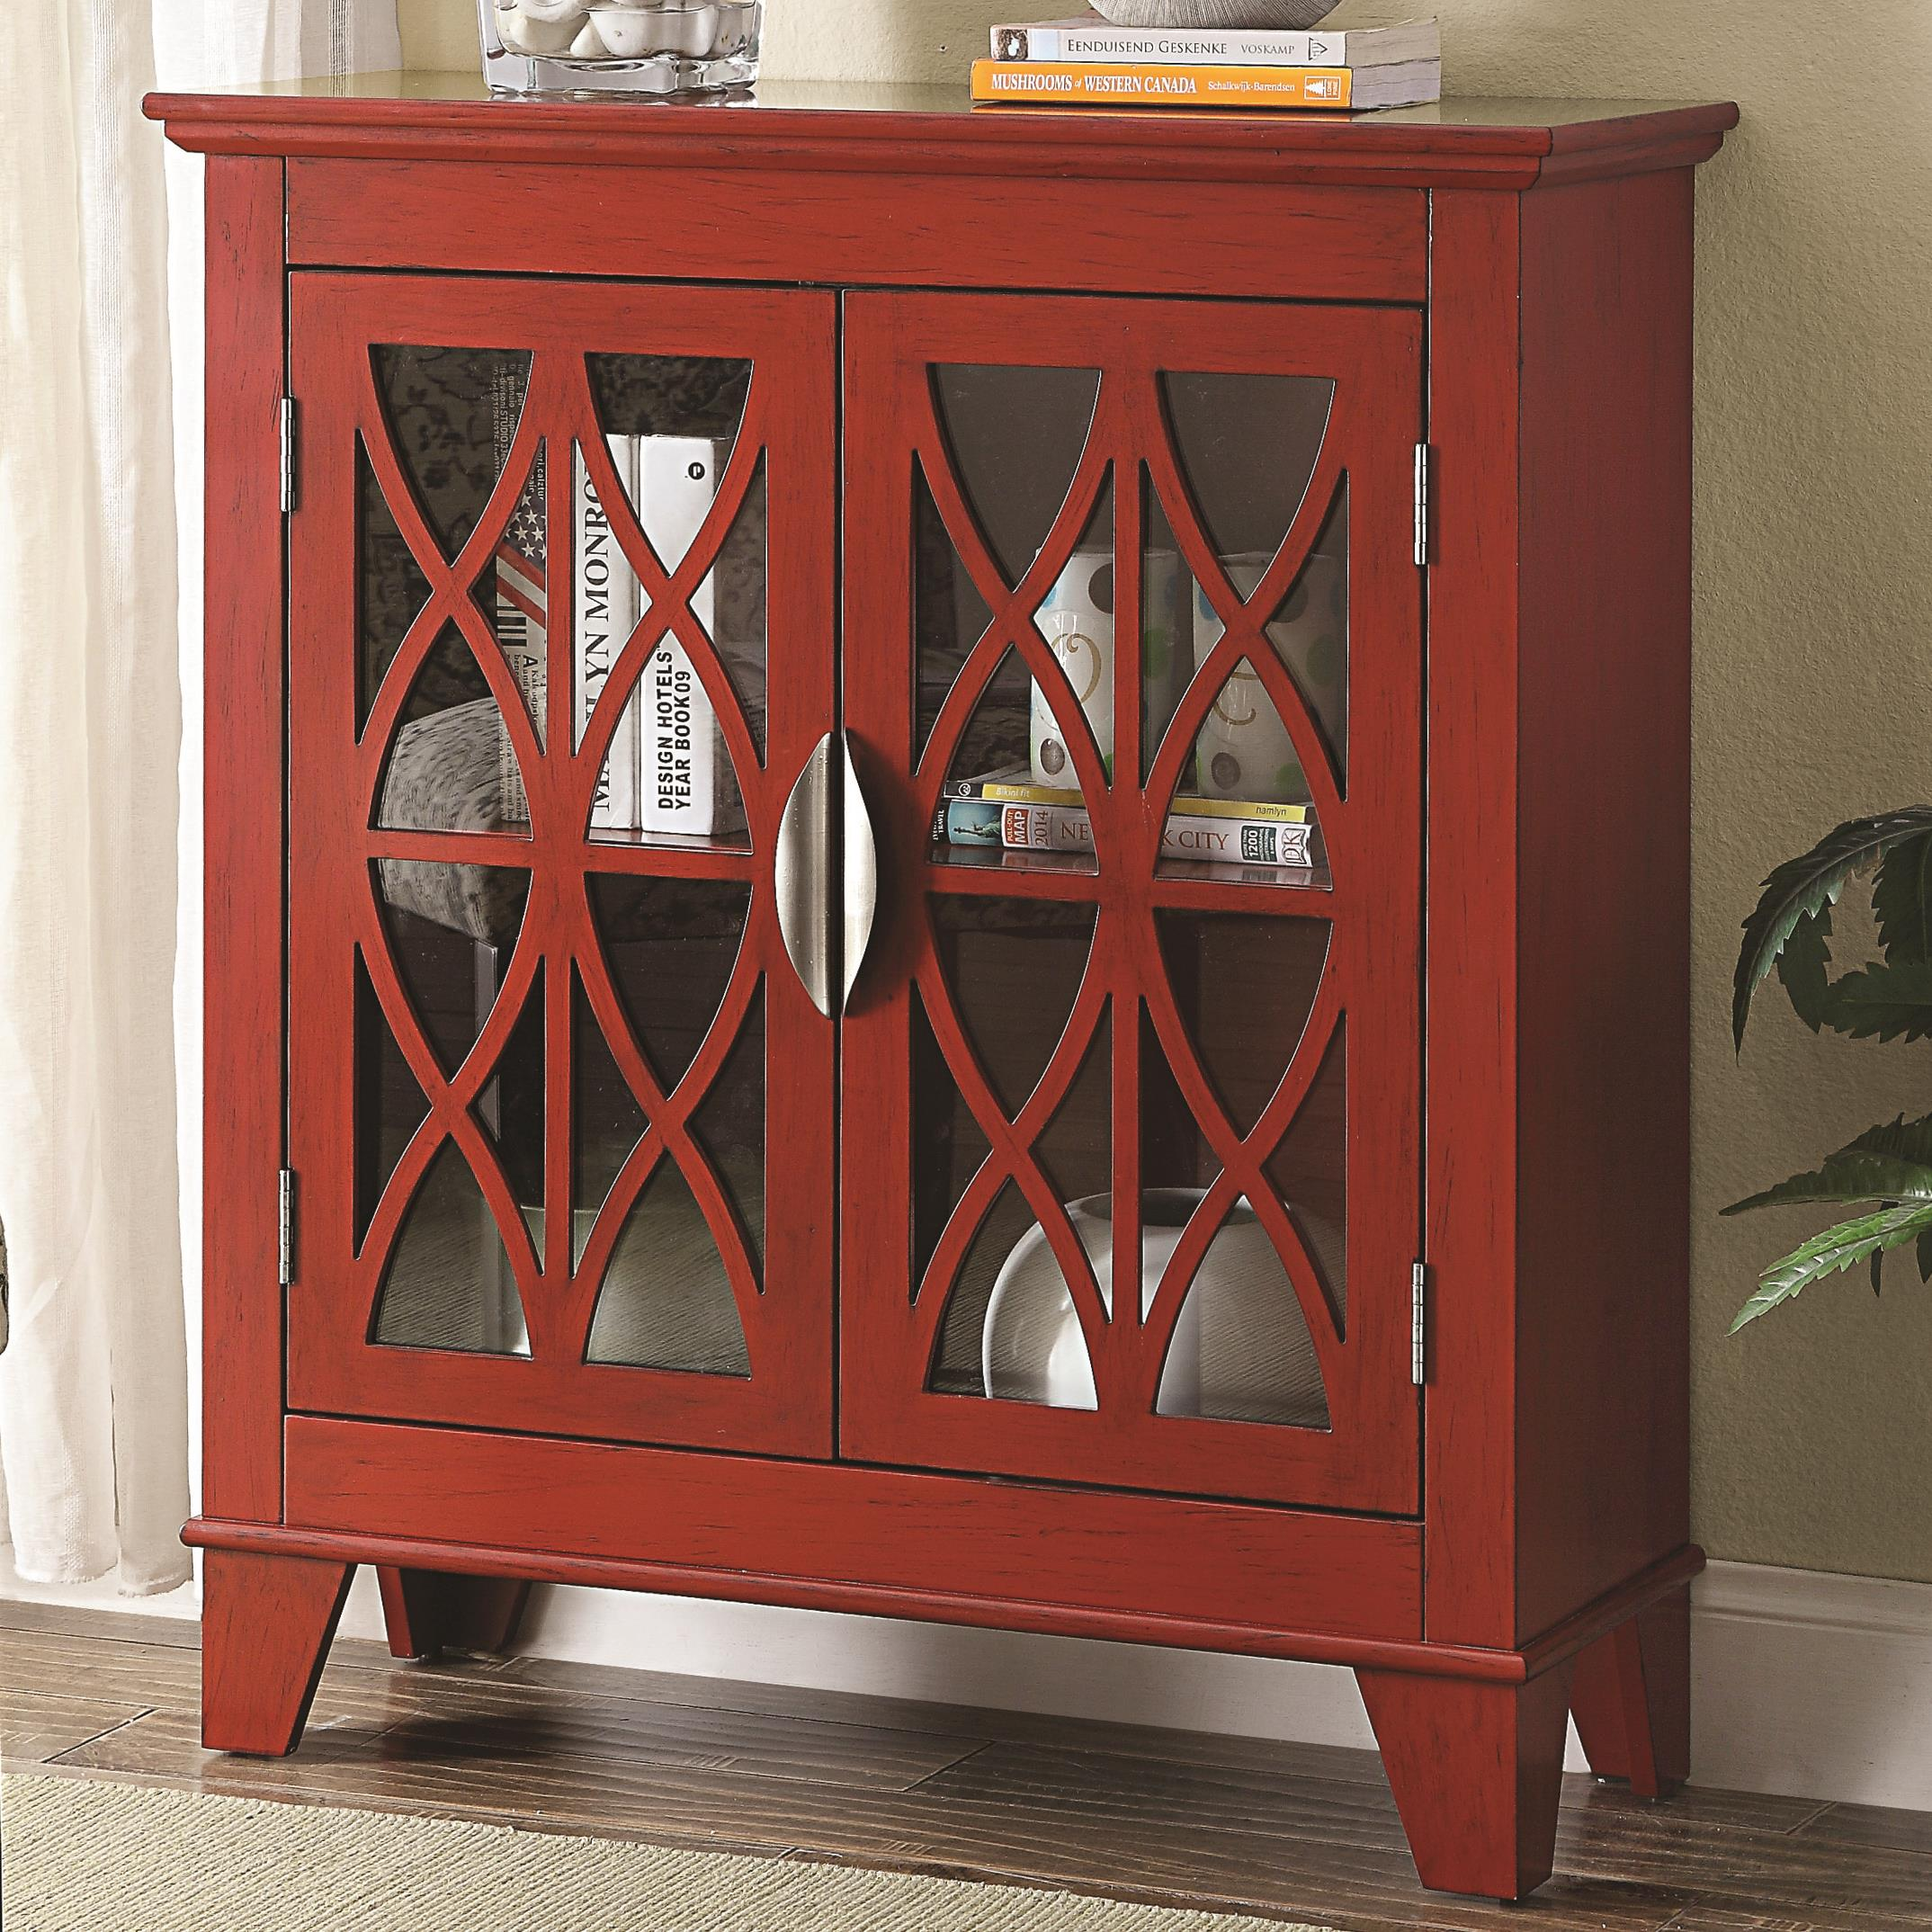 Coaster Accent Cabinets Accent Cabinet - Item Number: 950312